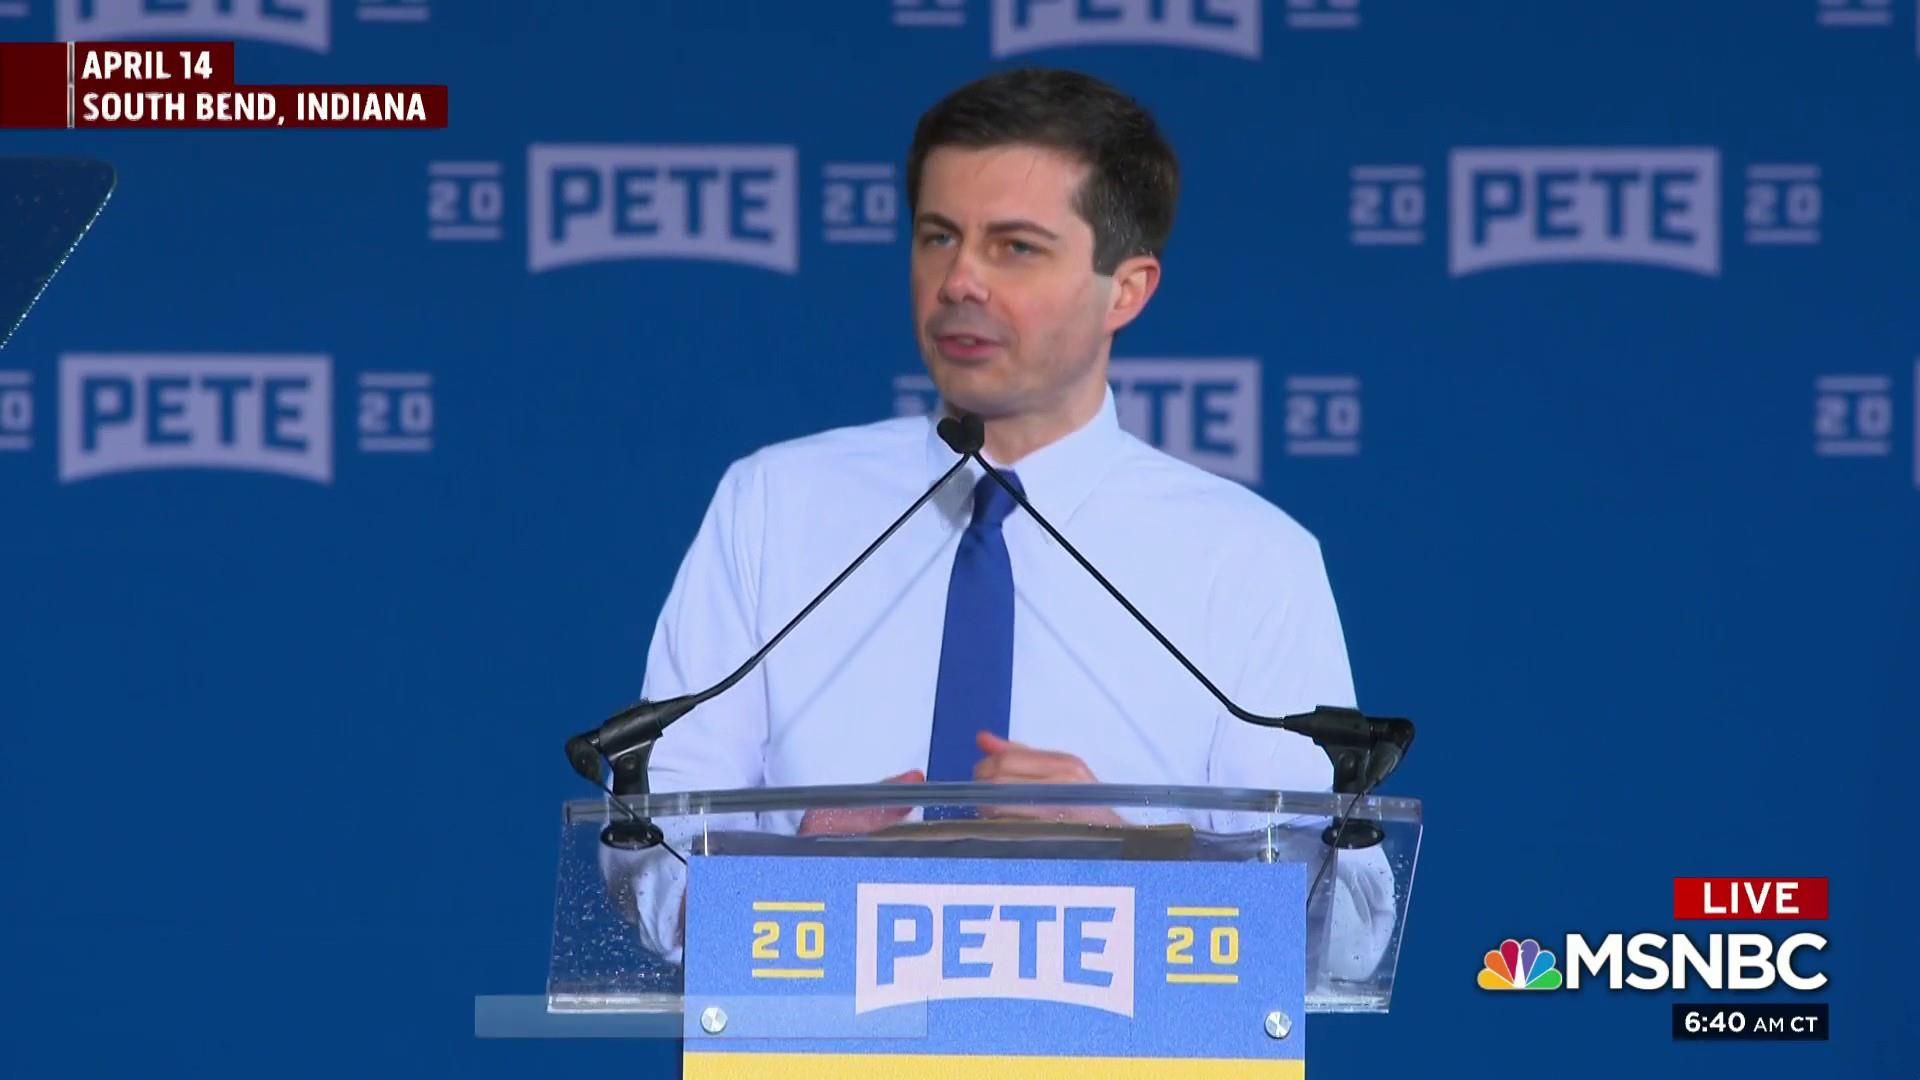 Buttigieg is the only top 2020 candidate not offering staffers